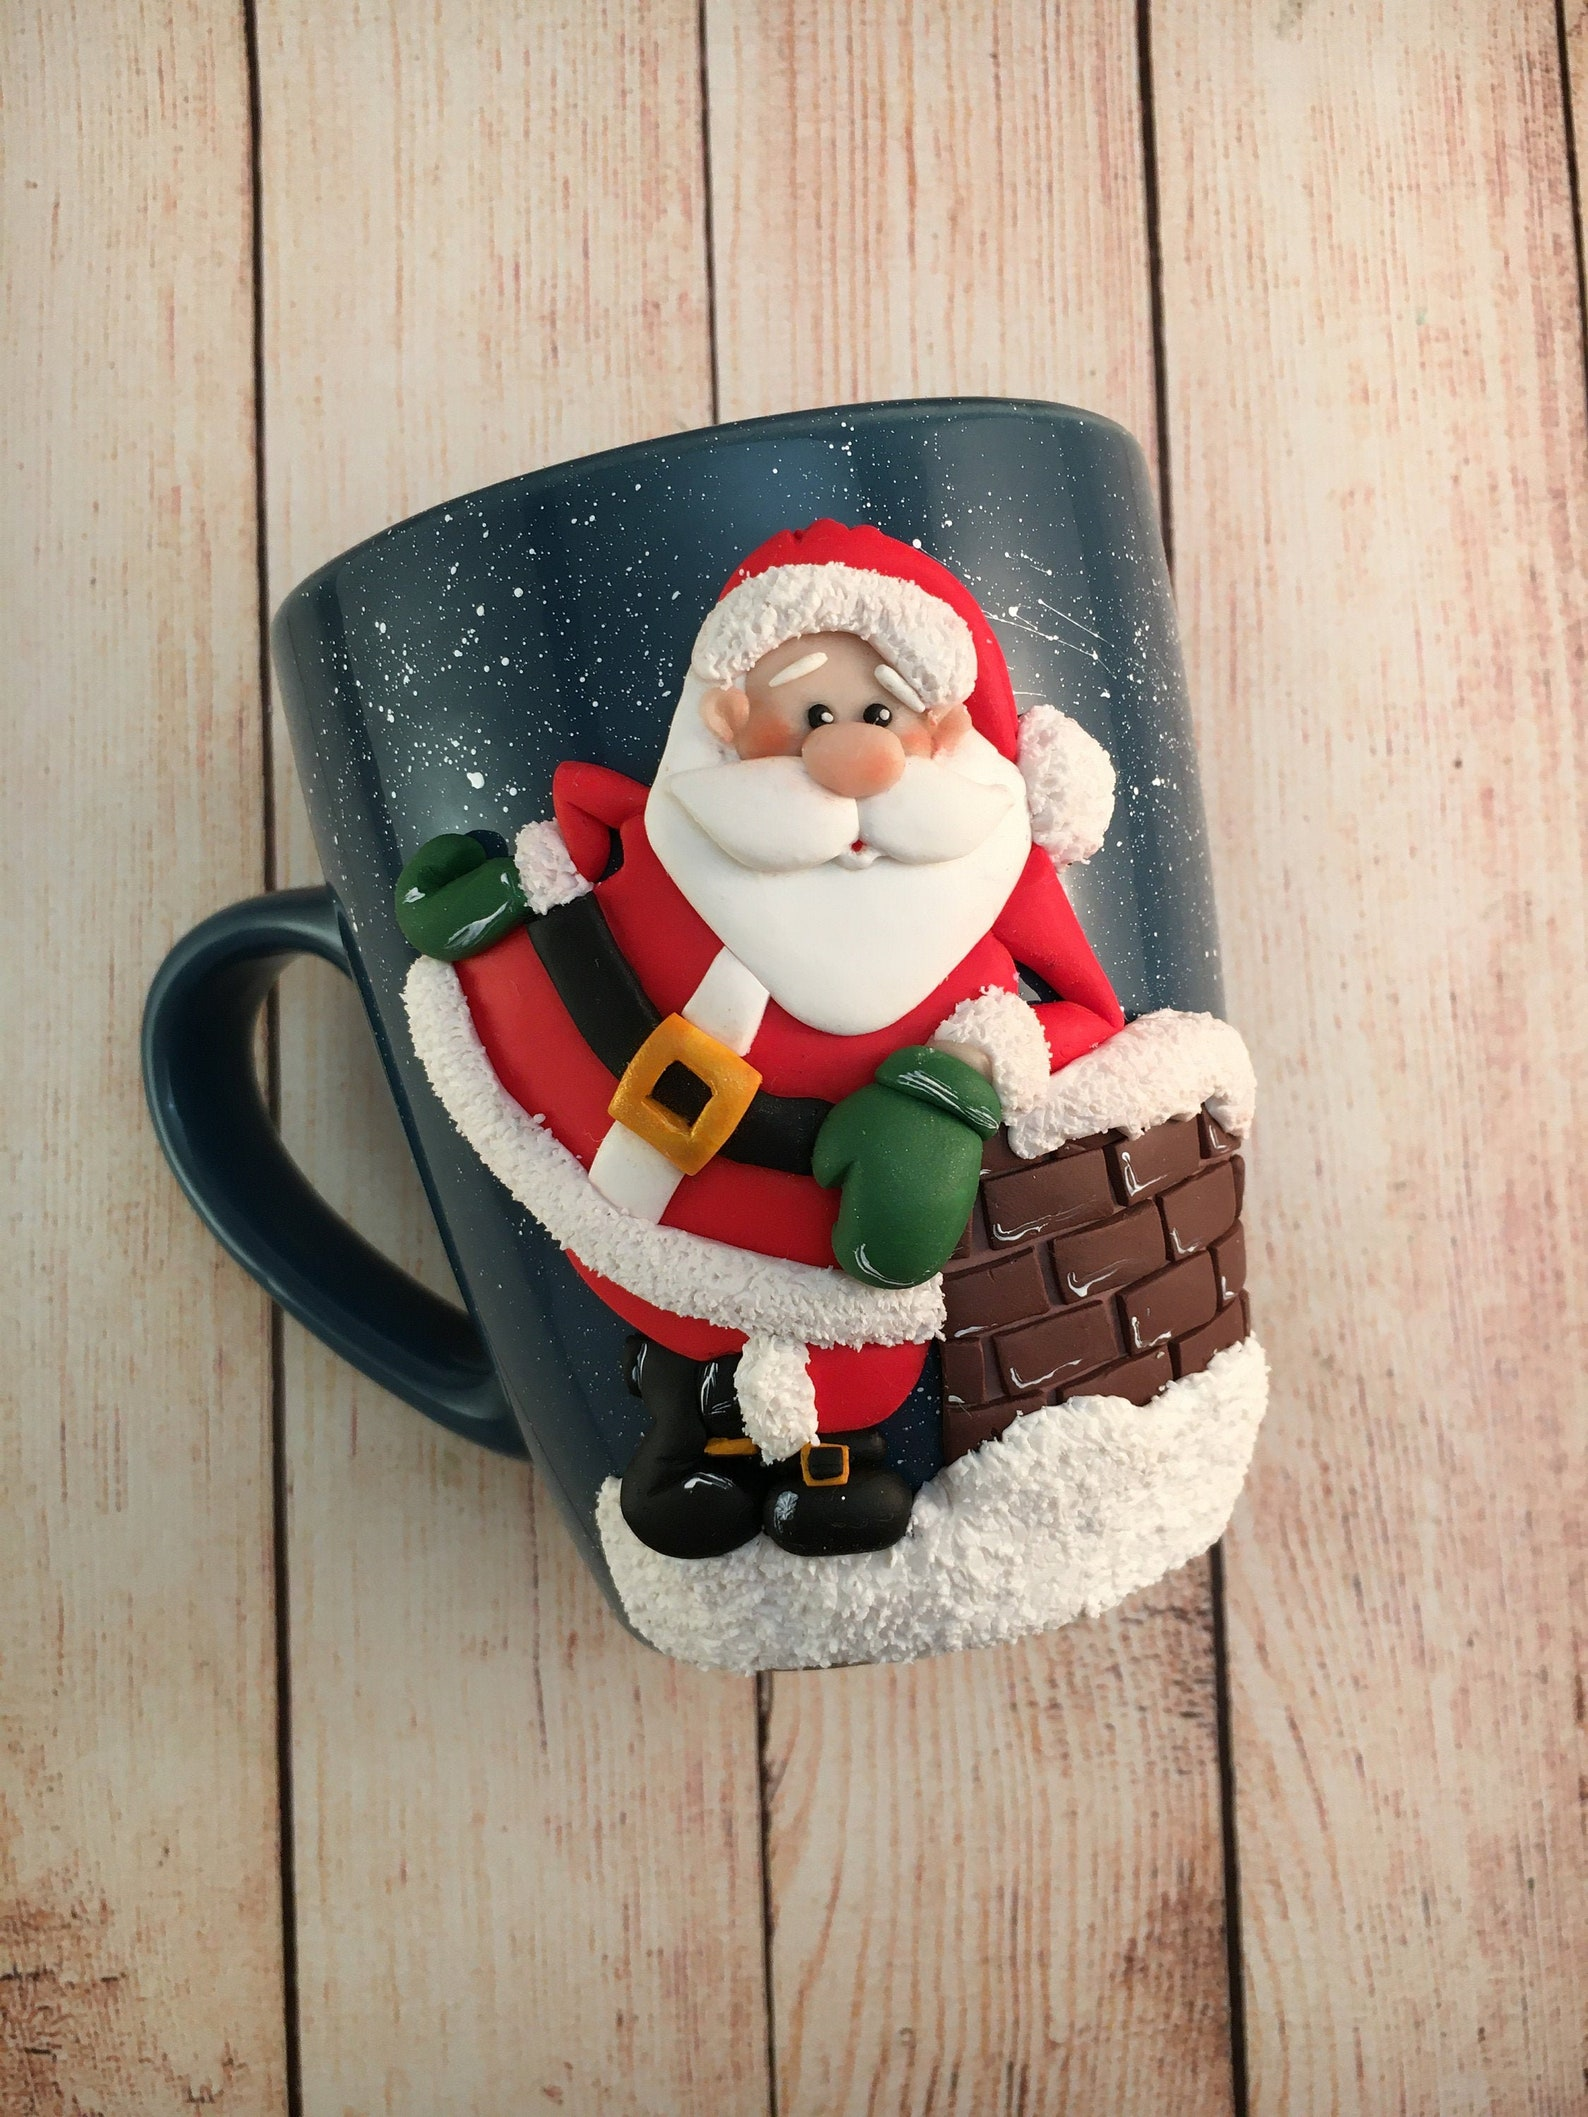 3D Santa Claus Mugs Page Two